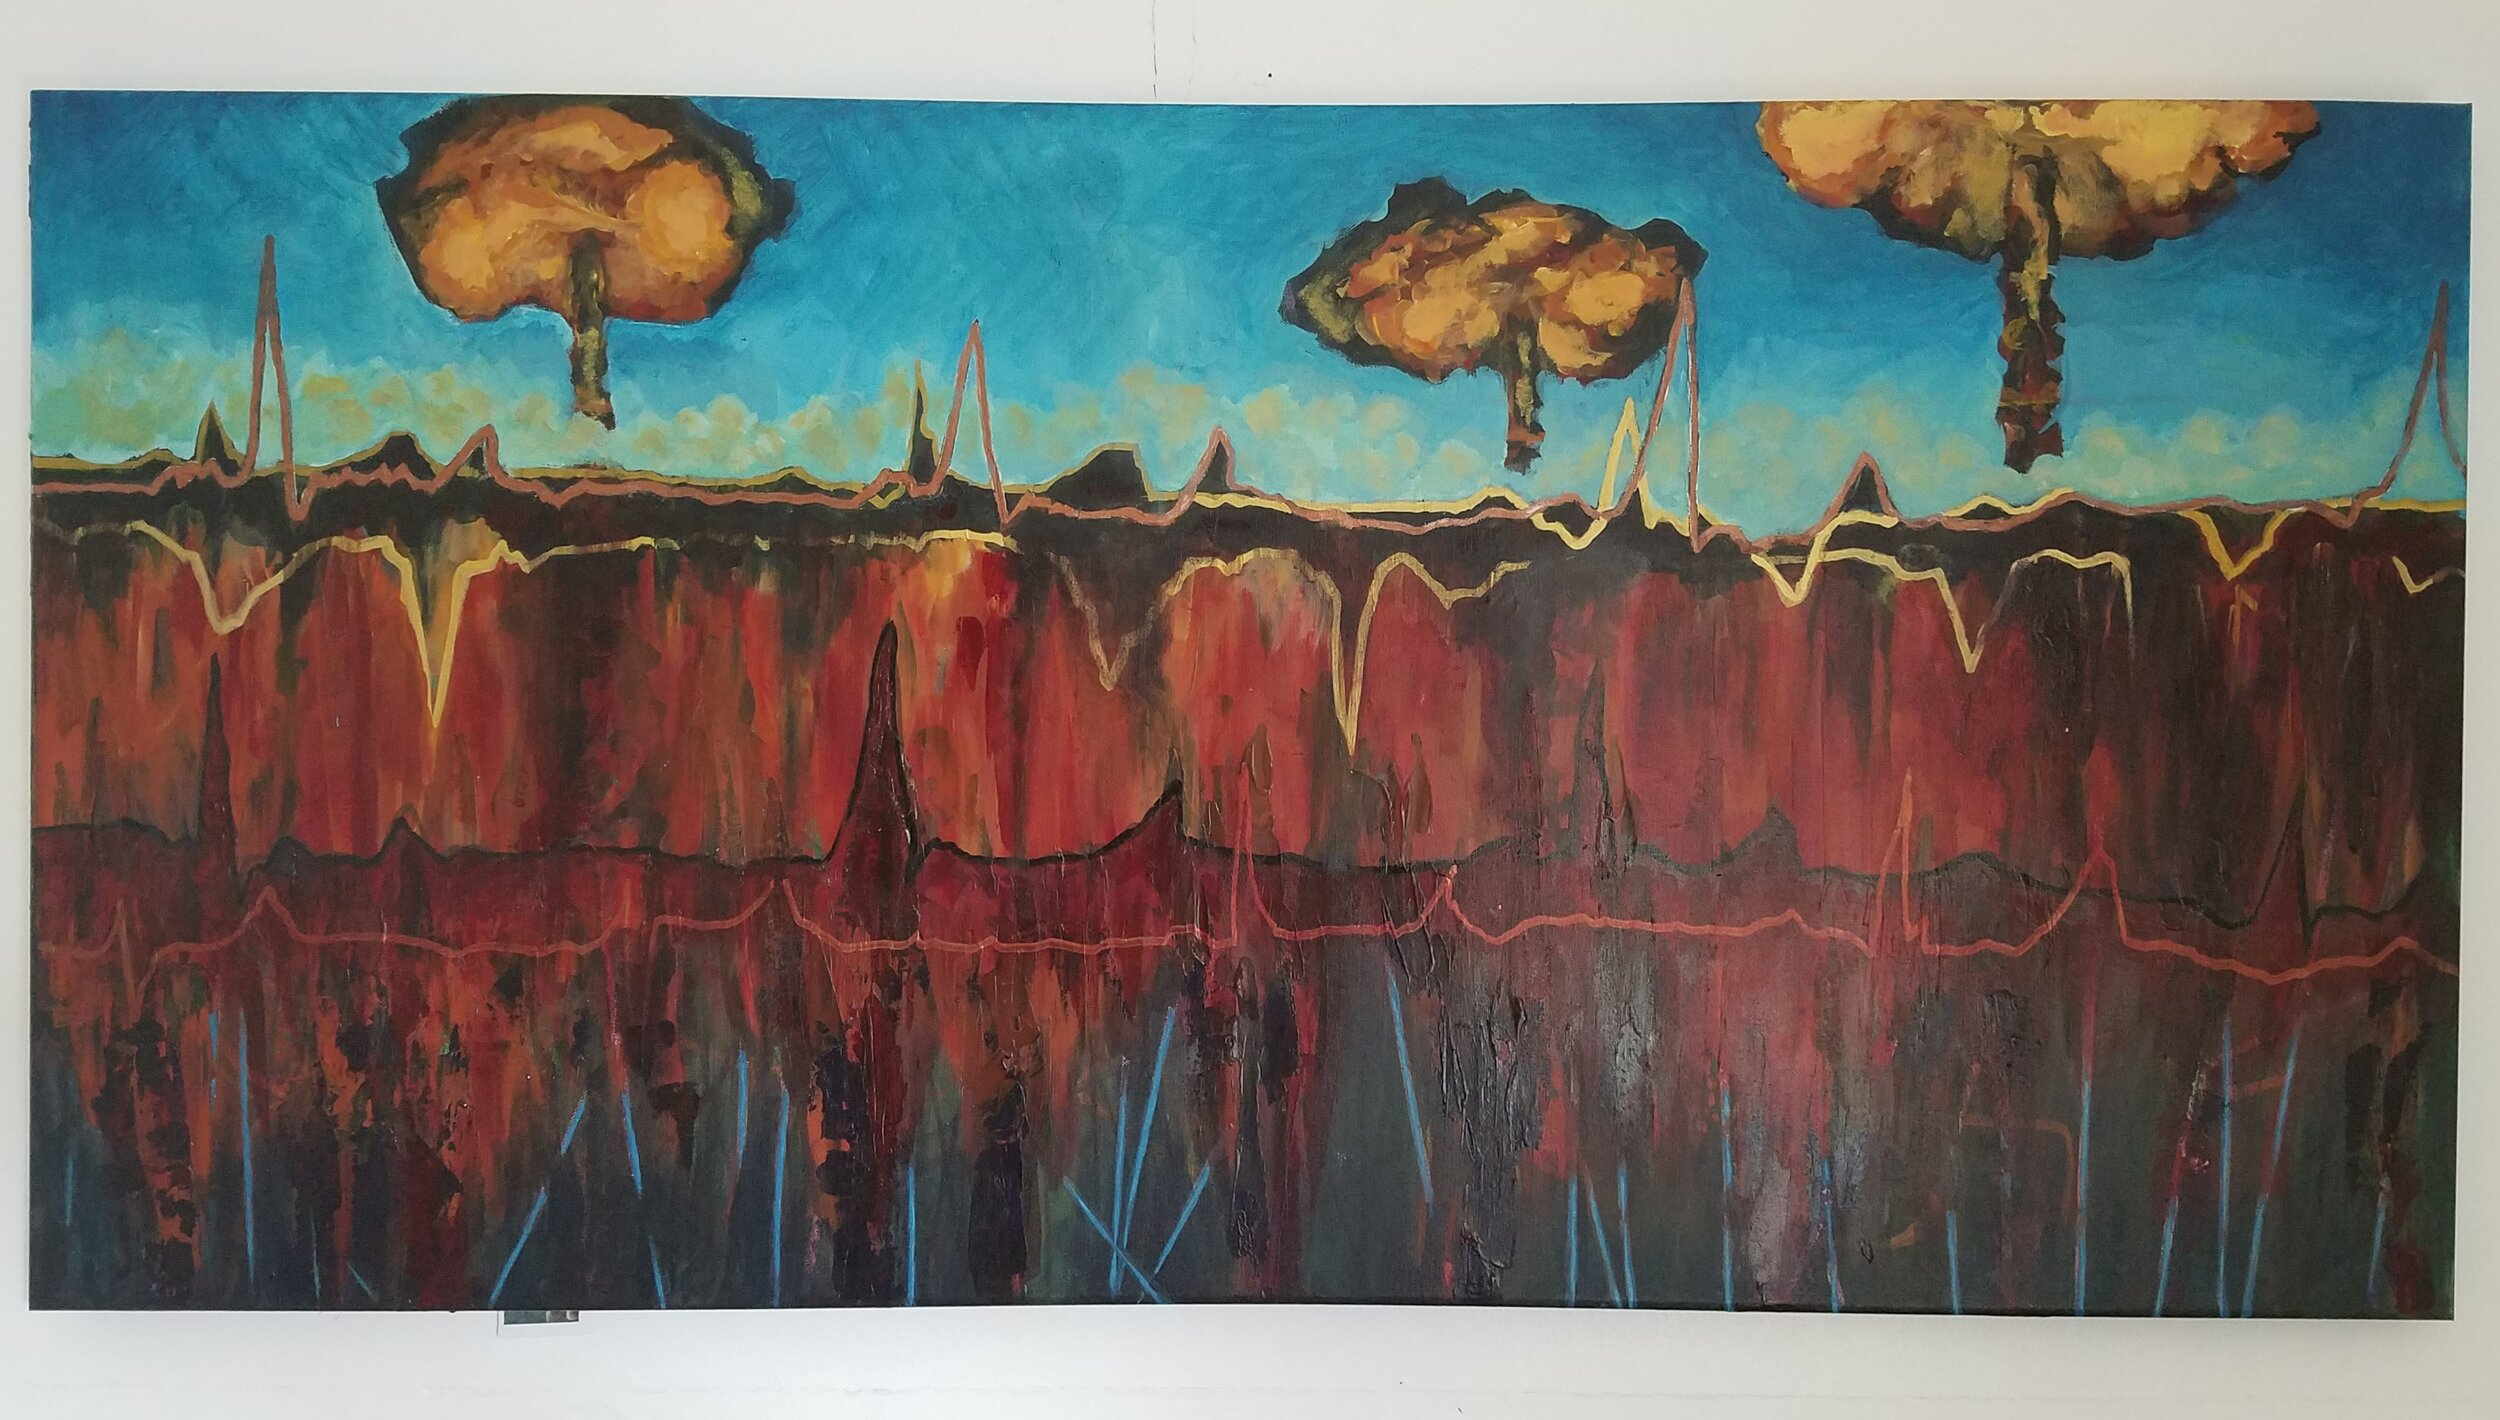 The Trajectory of Fear, 24x48 SOLD